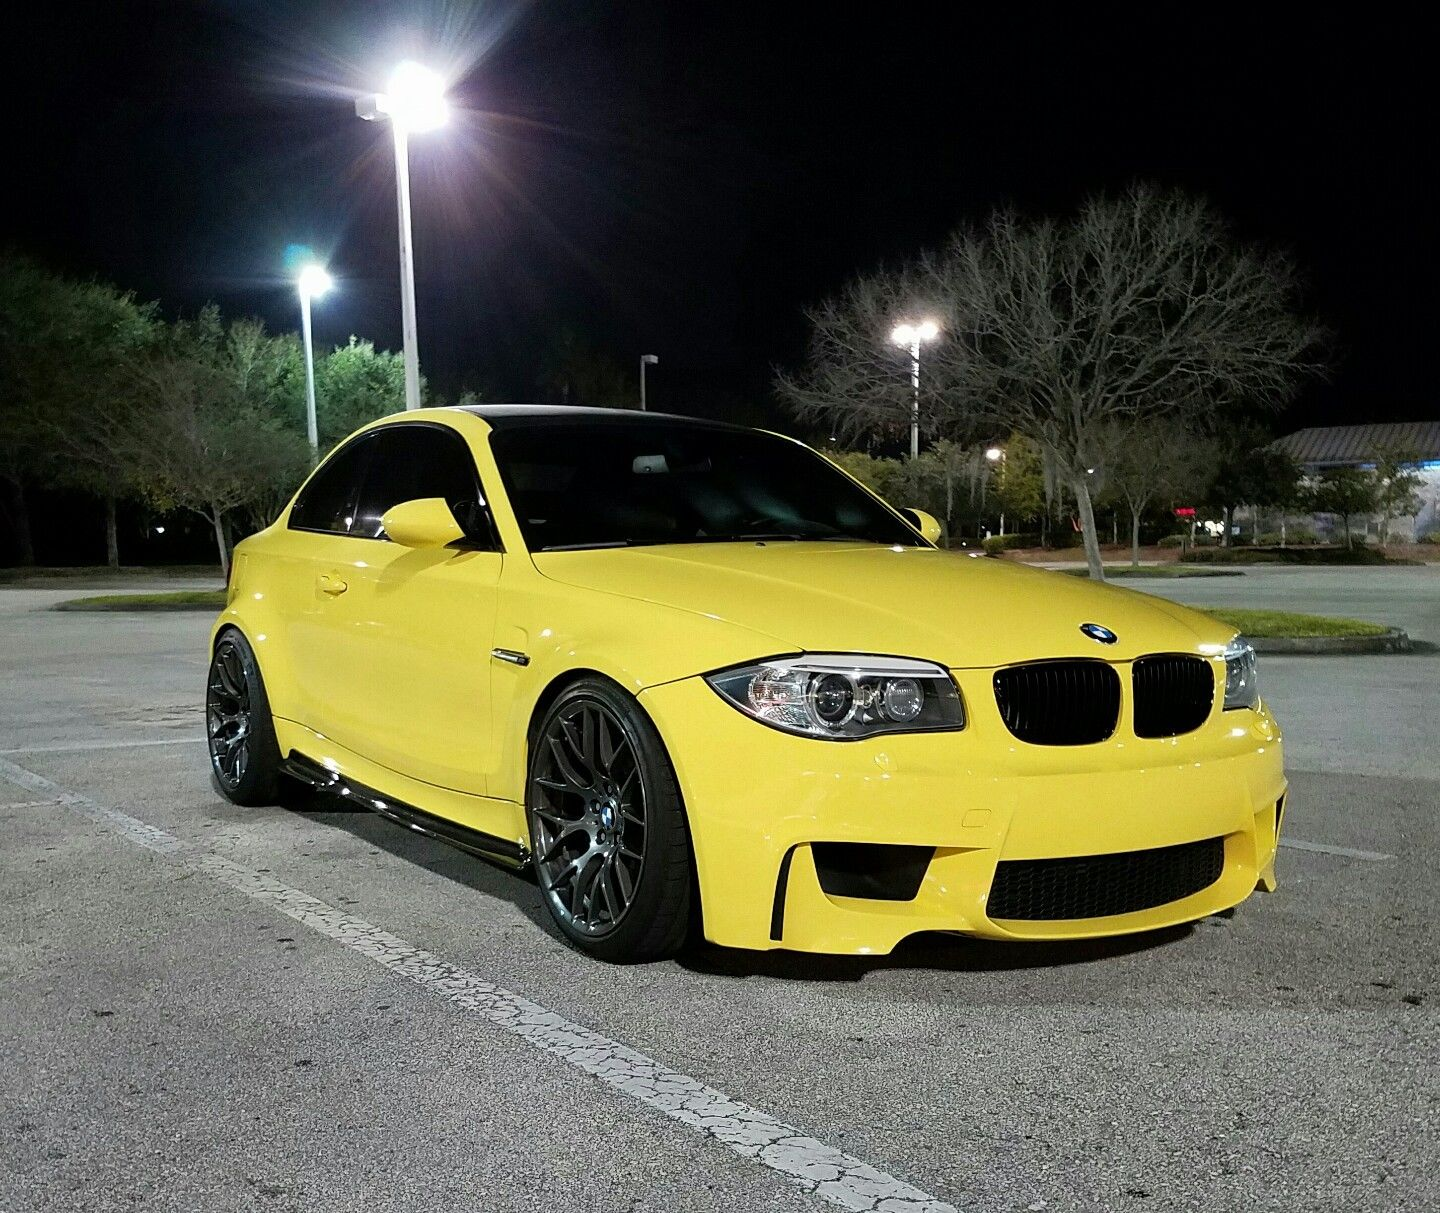 E87 German Cars For Sale Blog